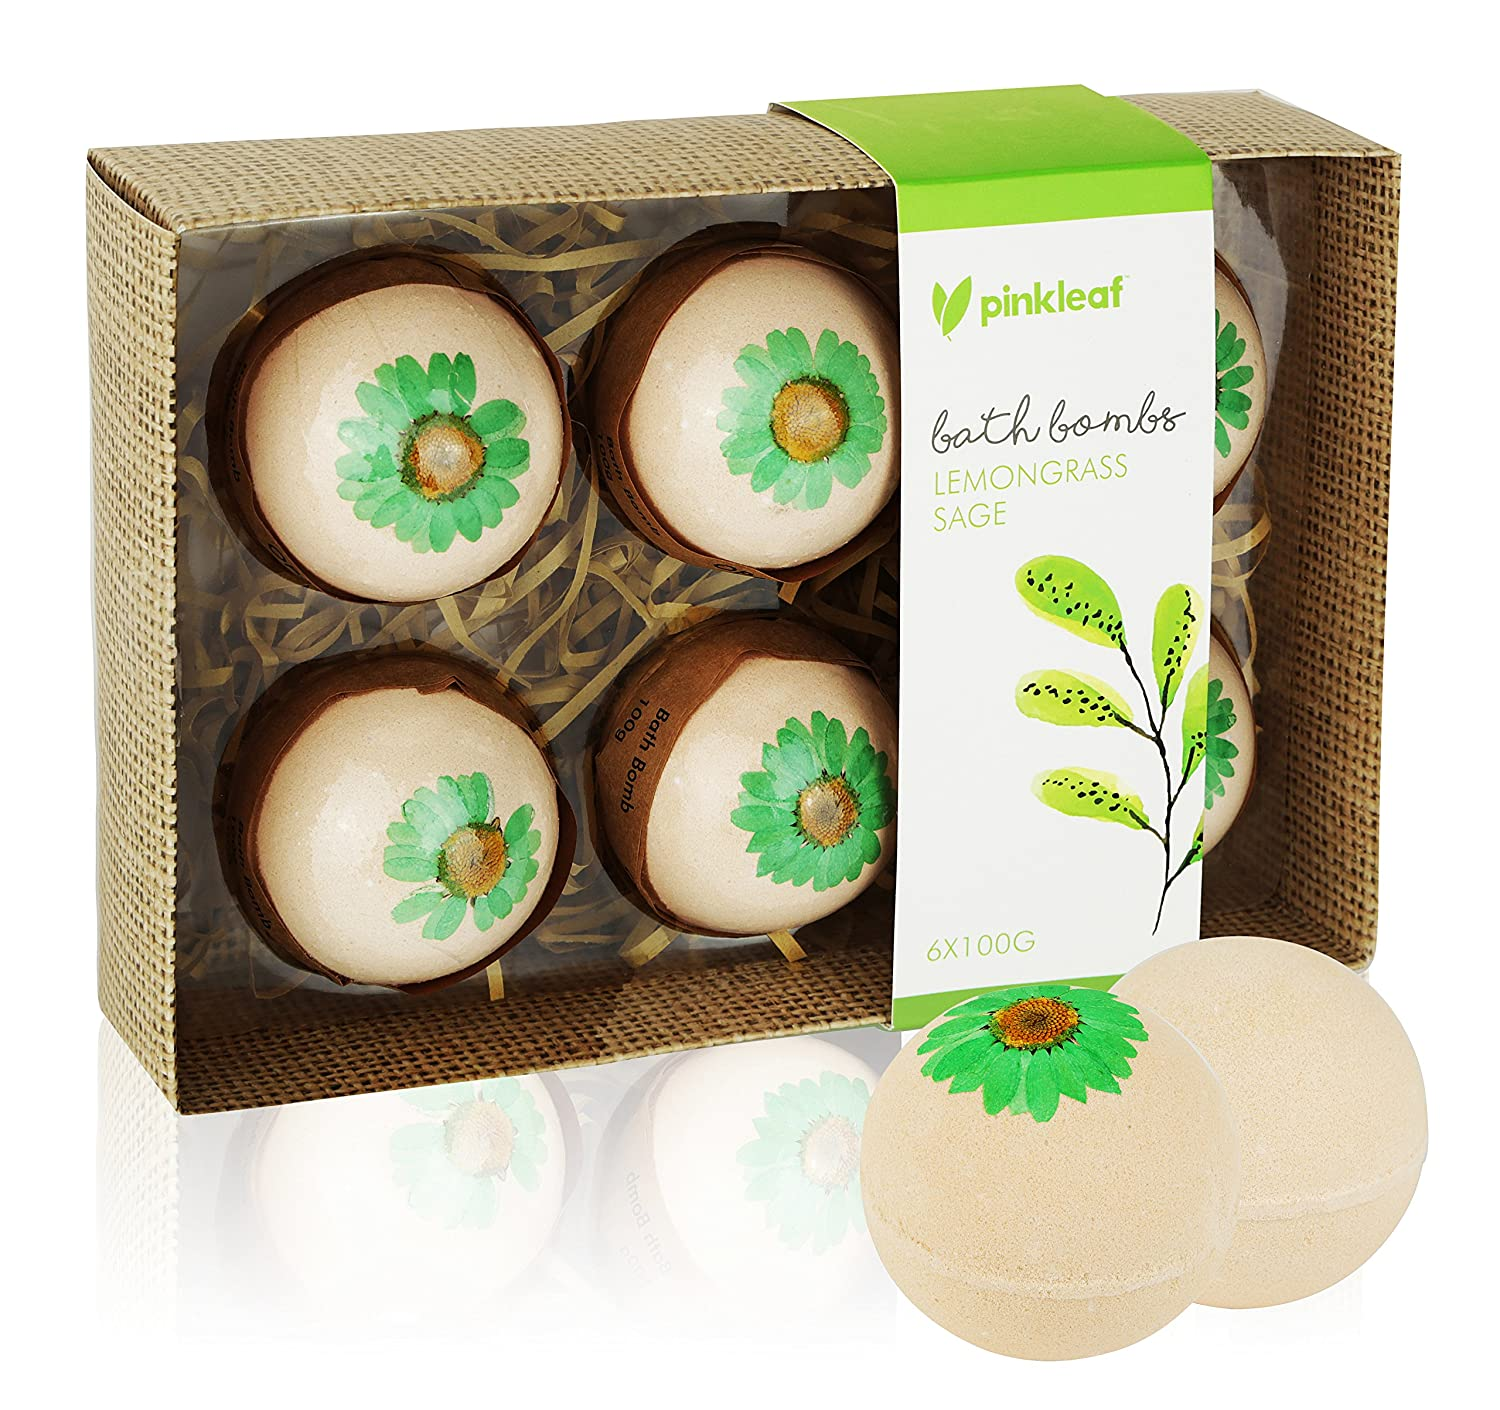 Lemongrass & Sage Essential Oil Bath Bombs Gift Set – Individually Wrapped Scented Aromatherapy Tub Fizzies Pampering Kit – Luxury Home Spa Fizzy Ball Drops 6 Pack, Best Gift Kit Ideas for Girlfriends, Women, Moms Pinkleaf